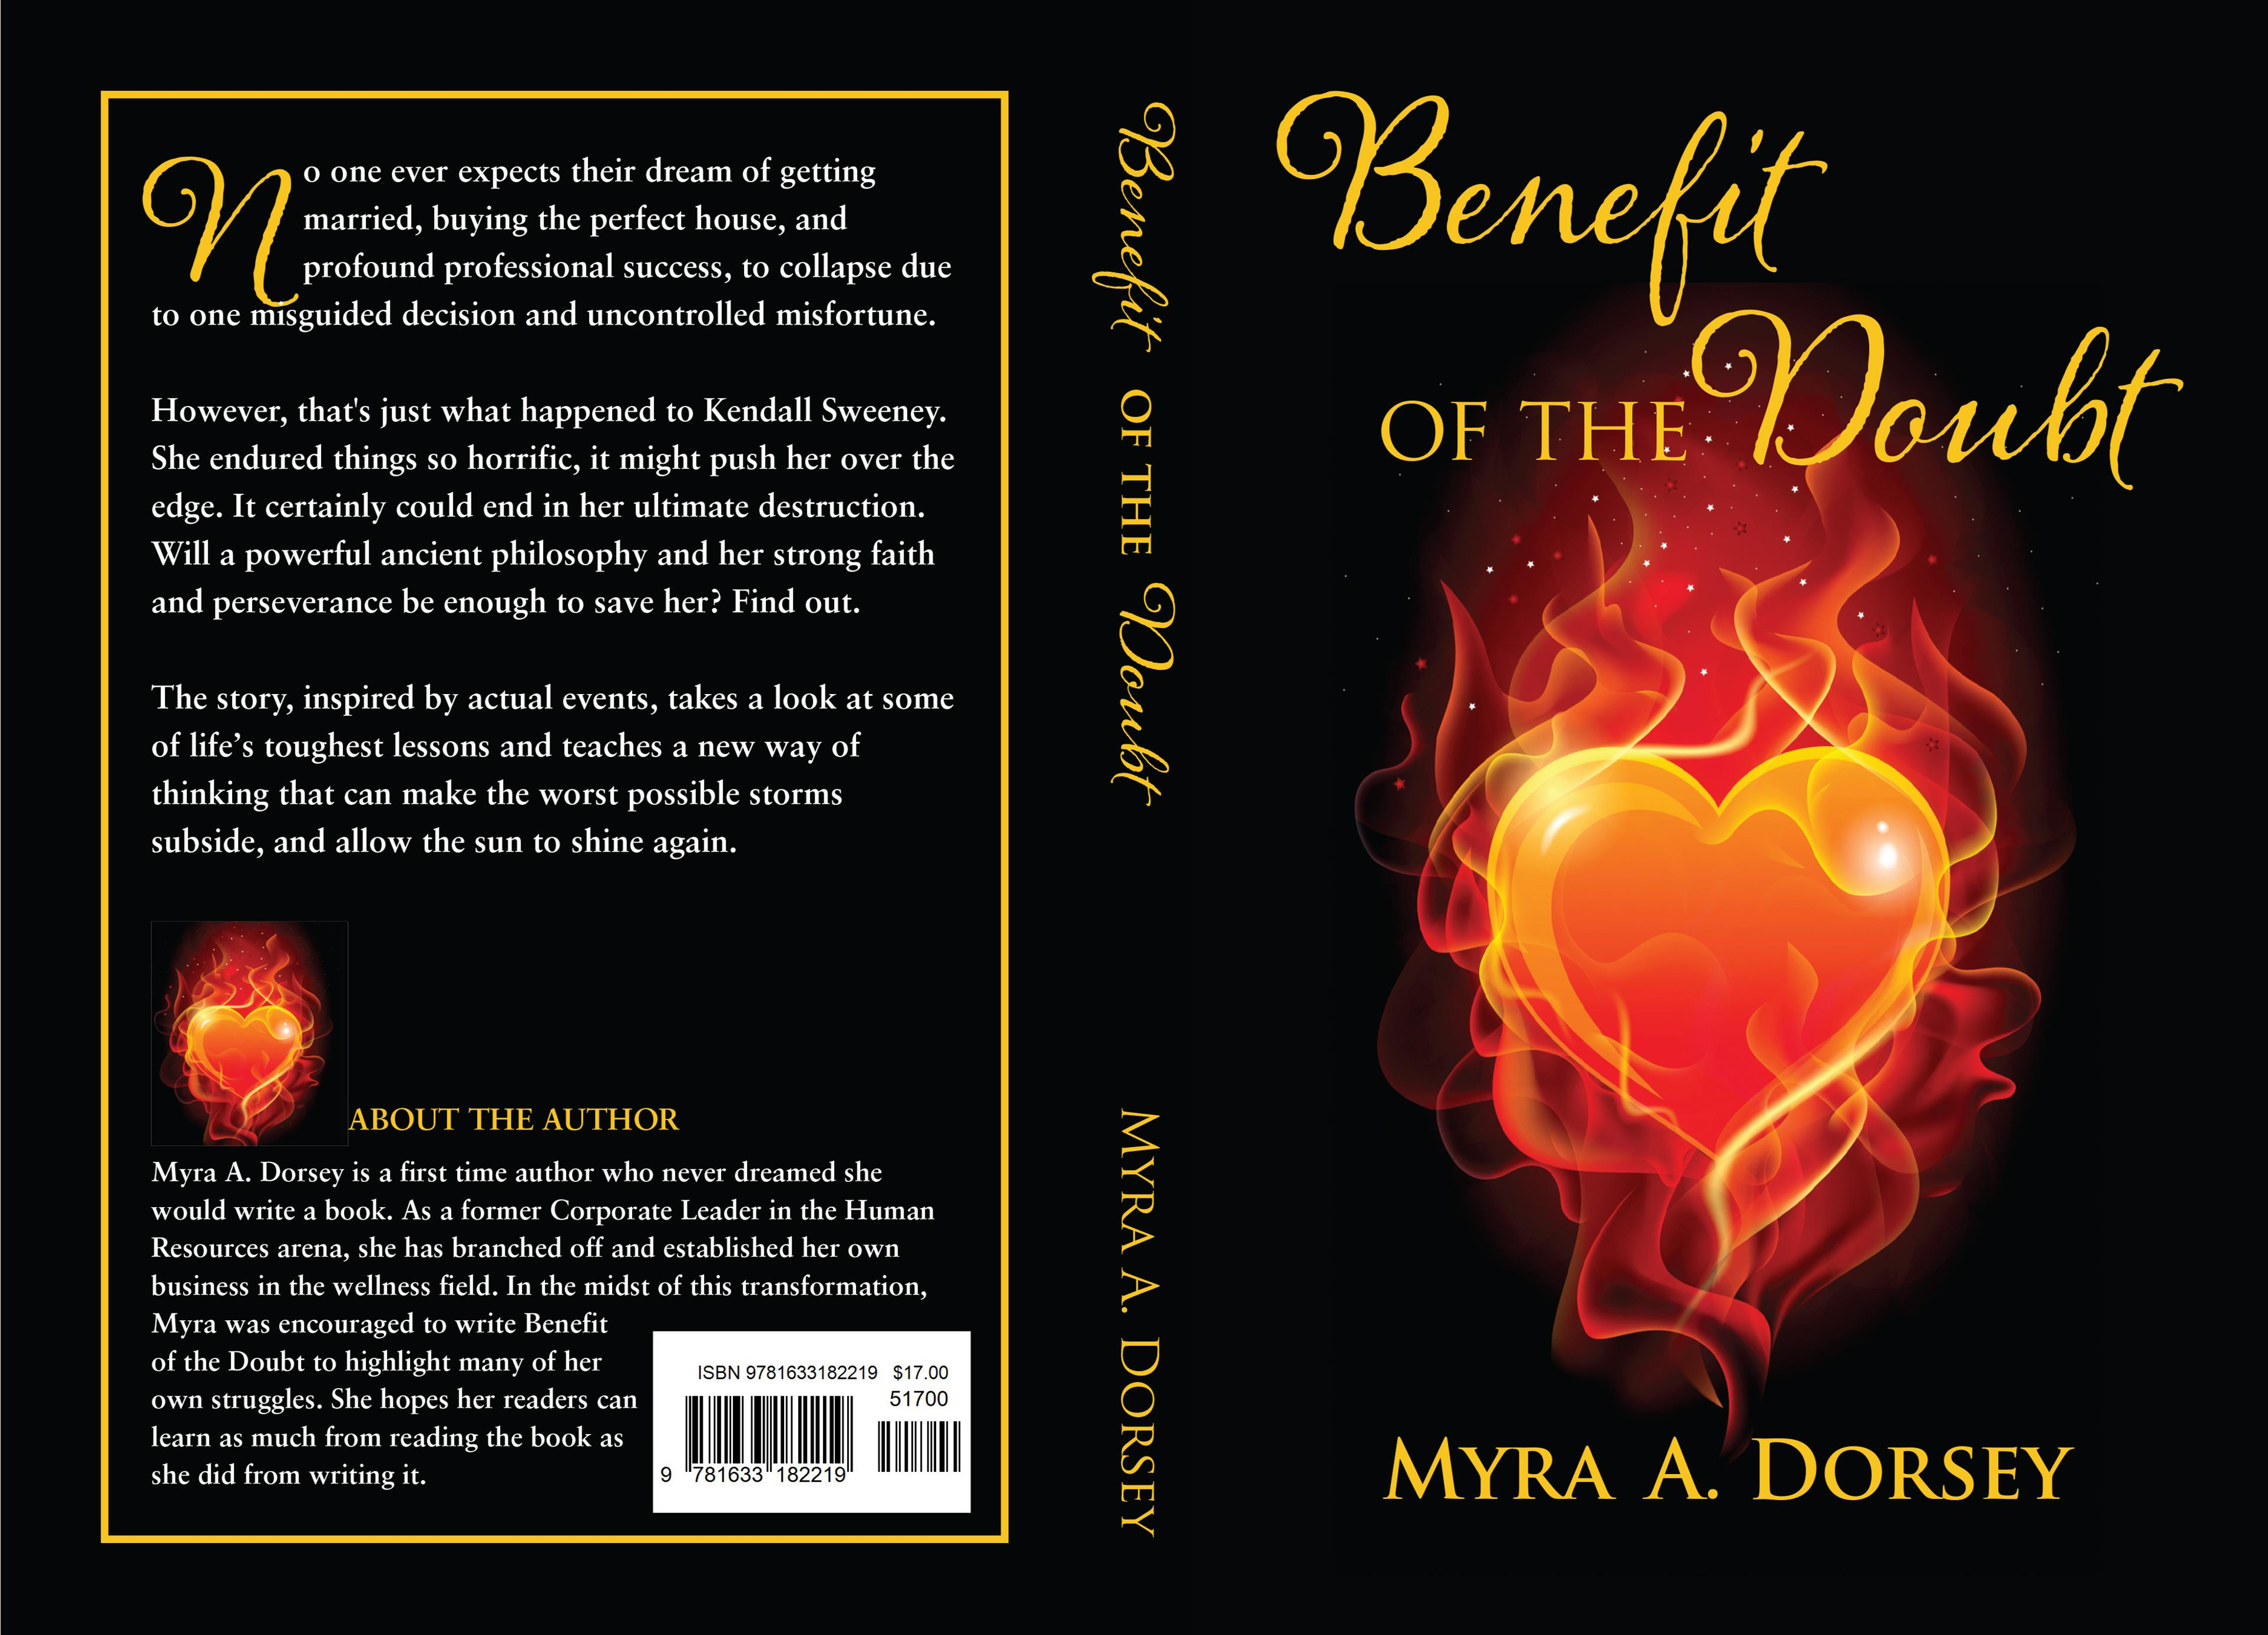 Benefit of the Doubt cover image